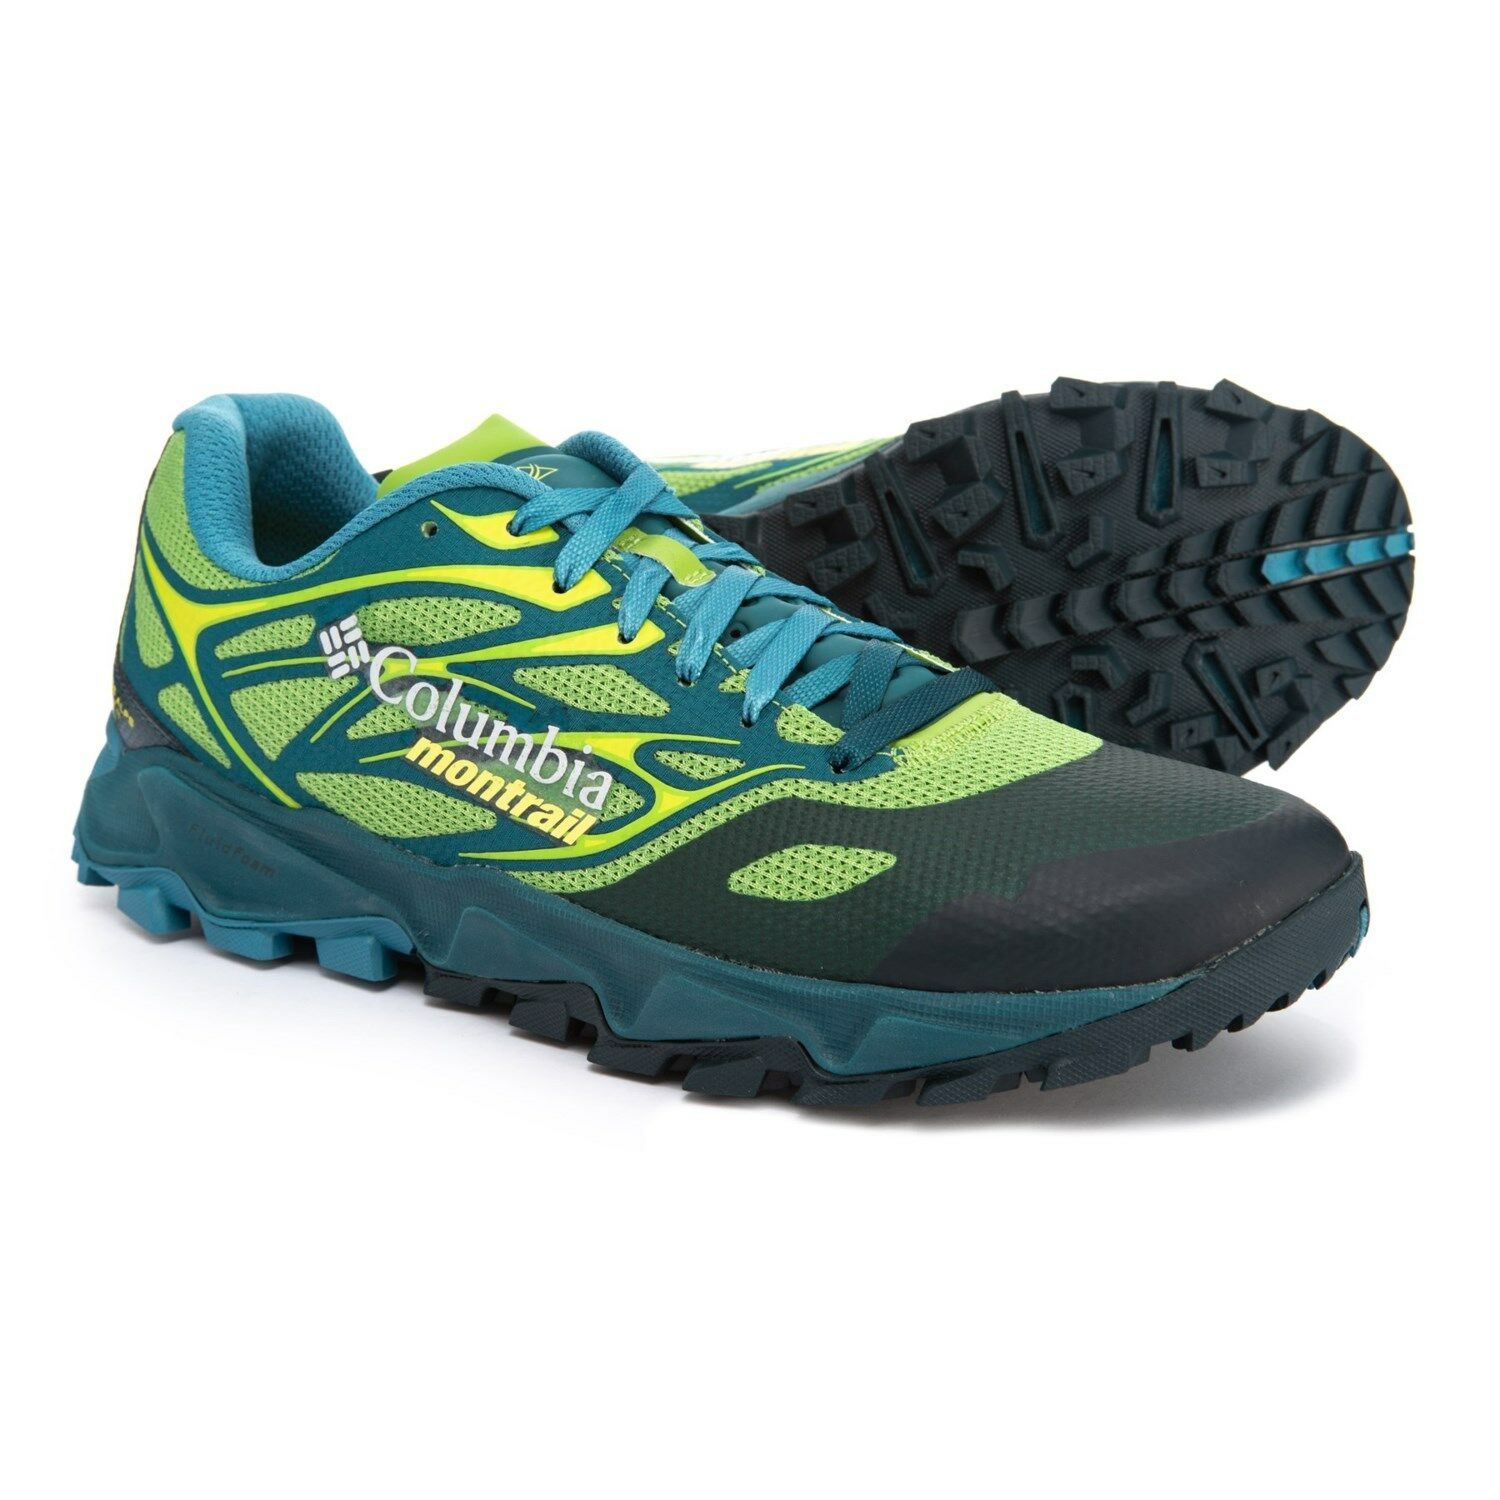 COLUMBIA MONTRAIL MENS 10,10.5, 11.5 TRANS ALPS FKT II TRAIL RUNNING shoes